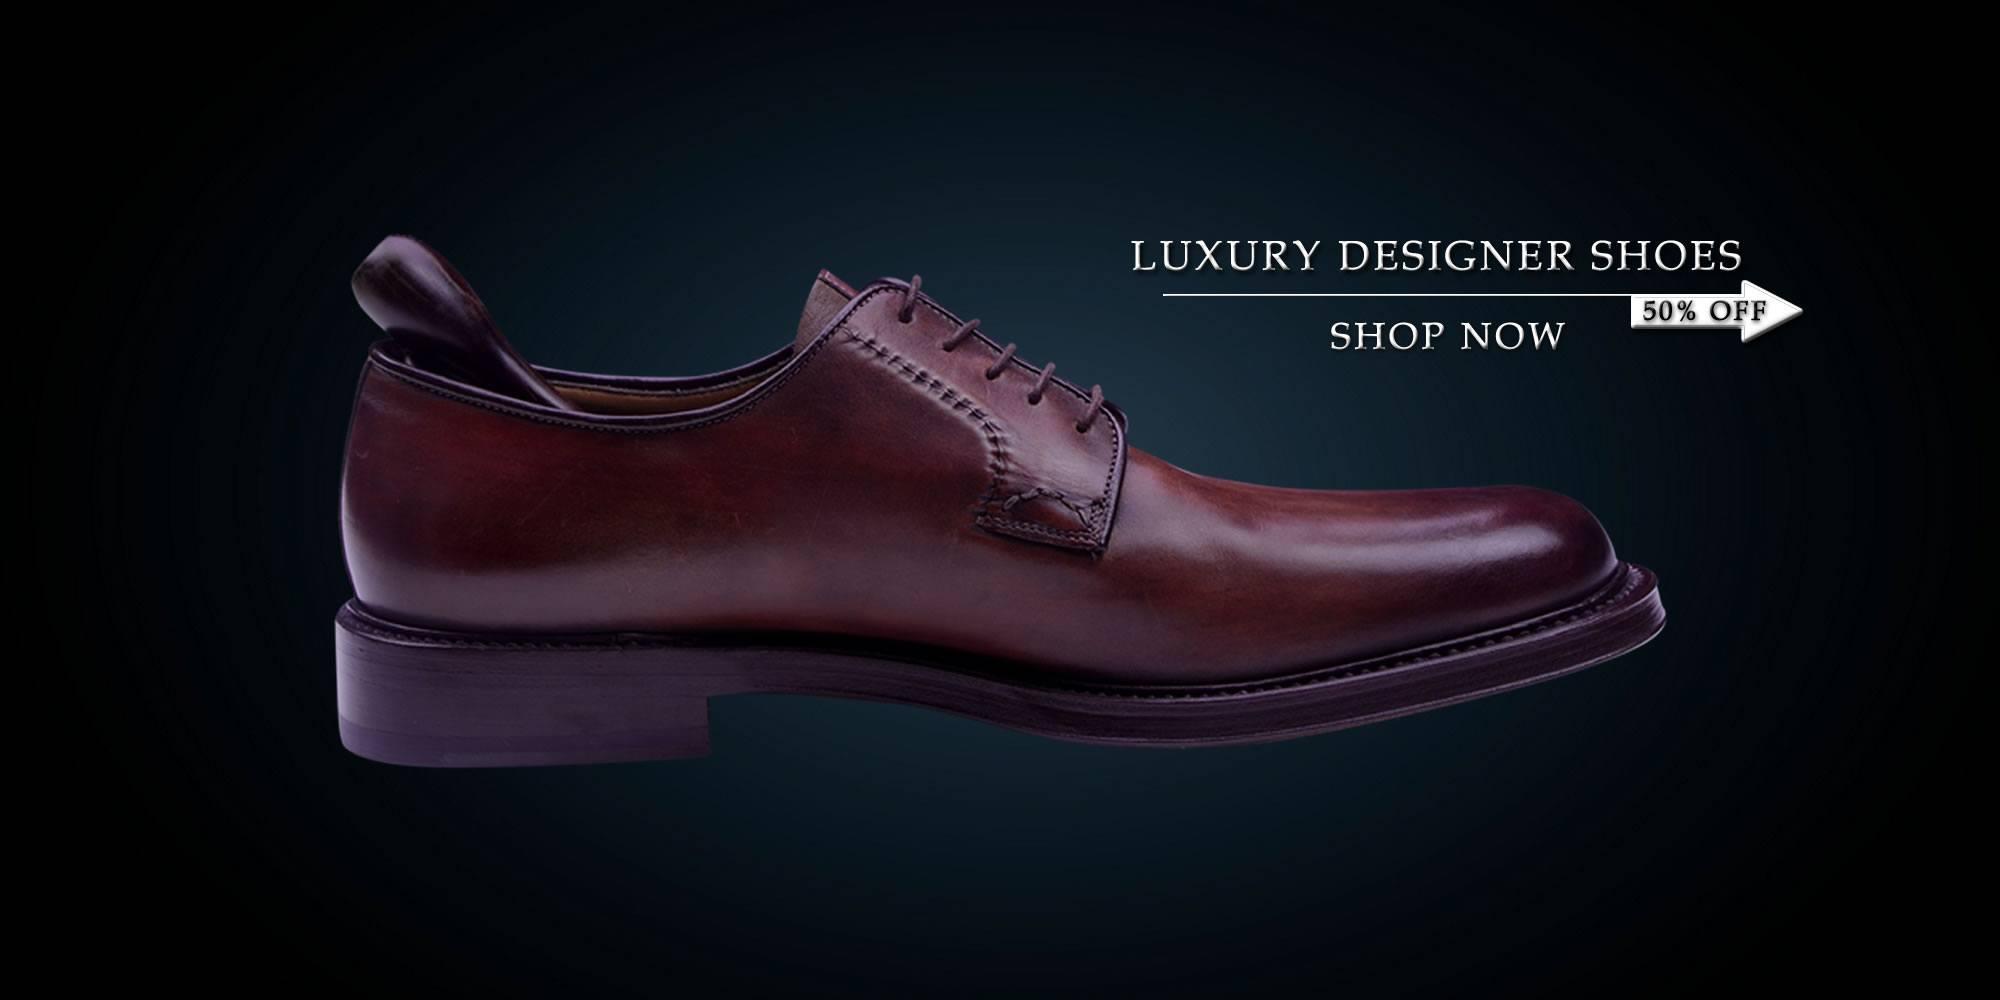 LUXURY DESIGNER SHOES ON SALE IN VANCOUVER   FASHION HUB